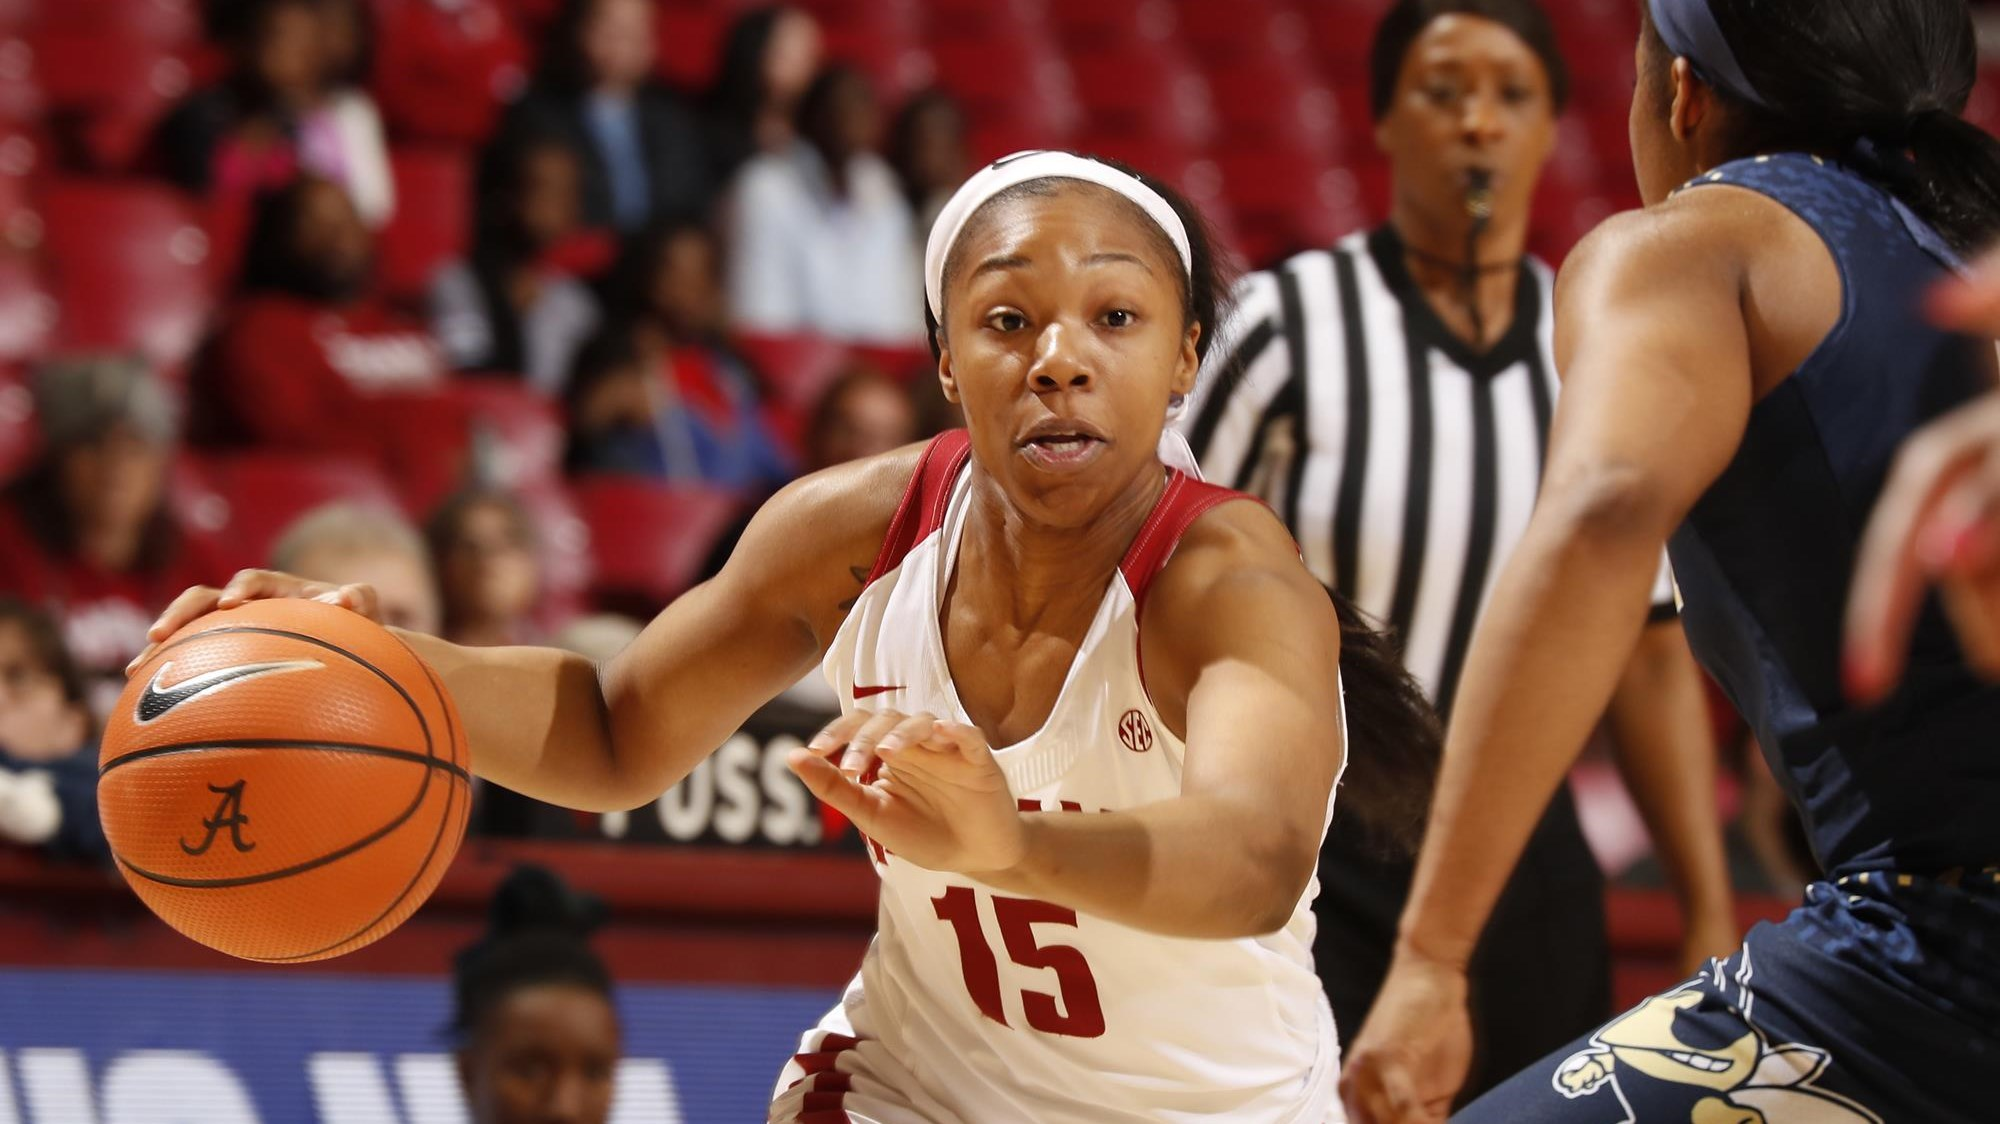 meoshonti knight's game-winning layup propels alabama women's